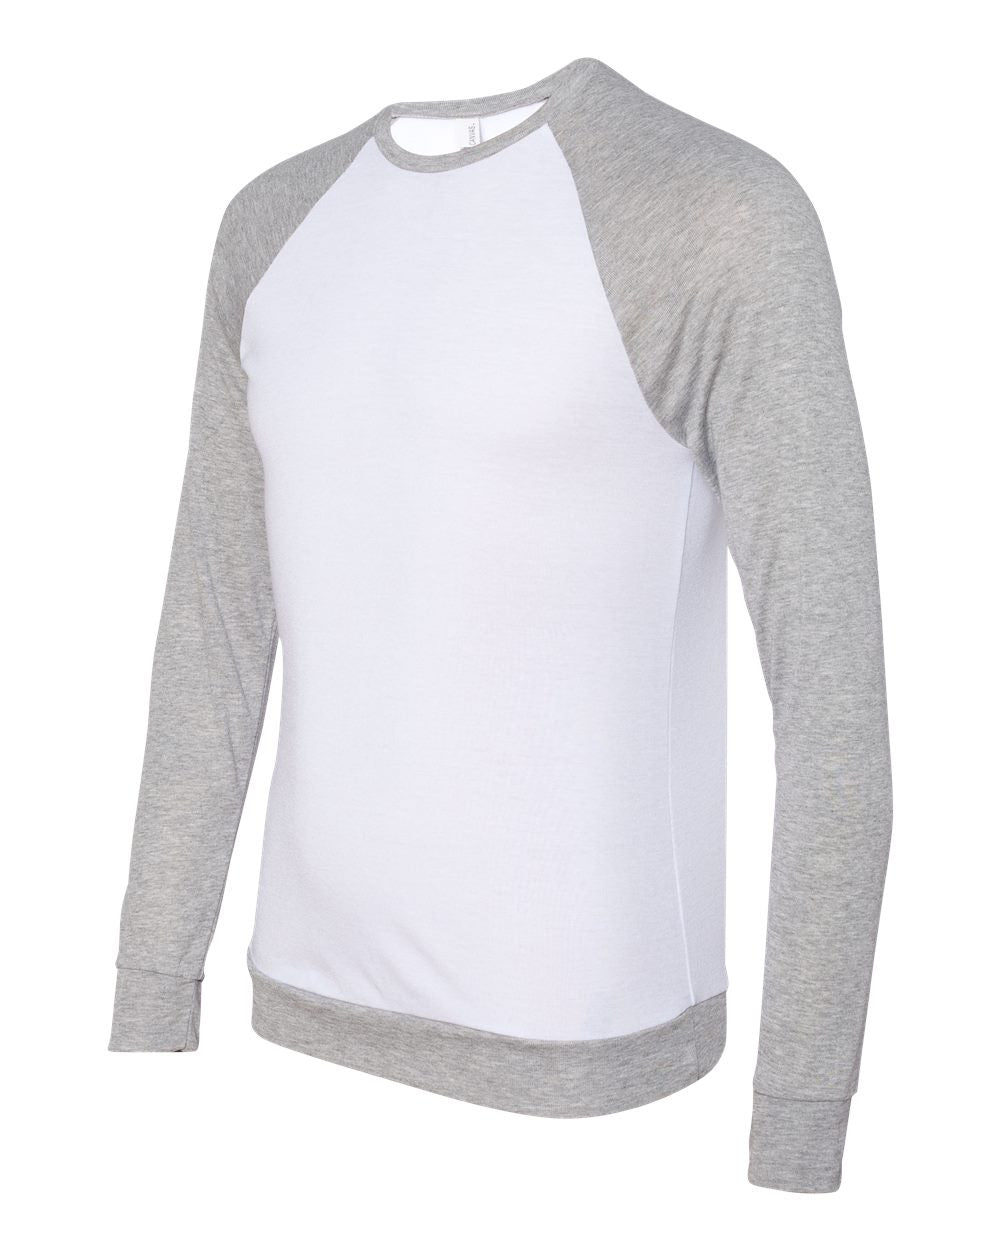 Womens Lightweight Sweater by Belle + Canvas - Discountedrack.com